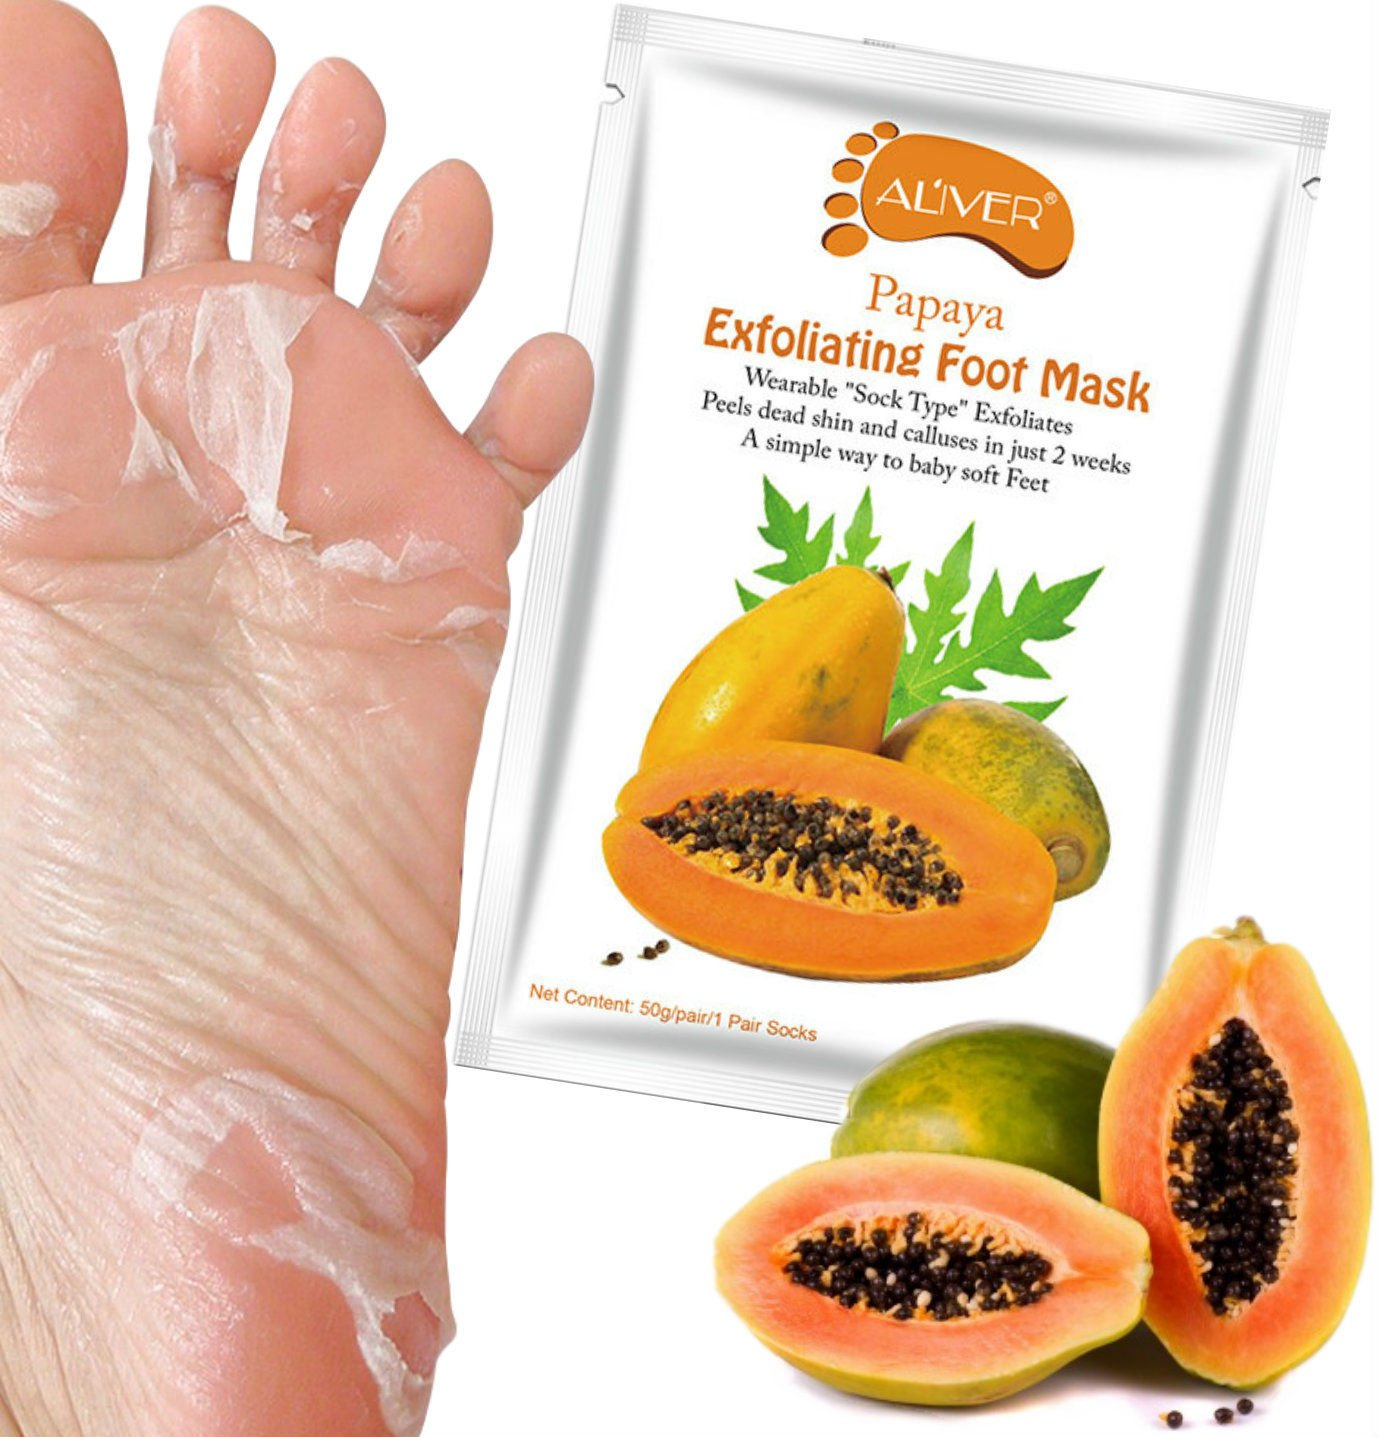 Aliver® Exfoliating Peeling with Papaya Extract Feet Foot Mask Socks Foot Care Renew Foot Dead Cracked Skin Corn Remover, Perfectly Peel Away Calluses and Dead Skin Cells in Just 7 days, Also Treats unpleasant odour - Socks Fits Up To Size 11UK / 46EU Ali